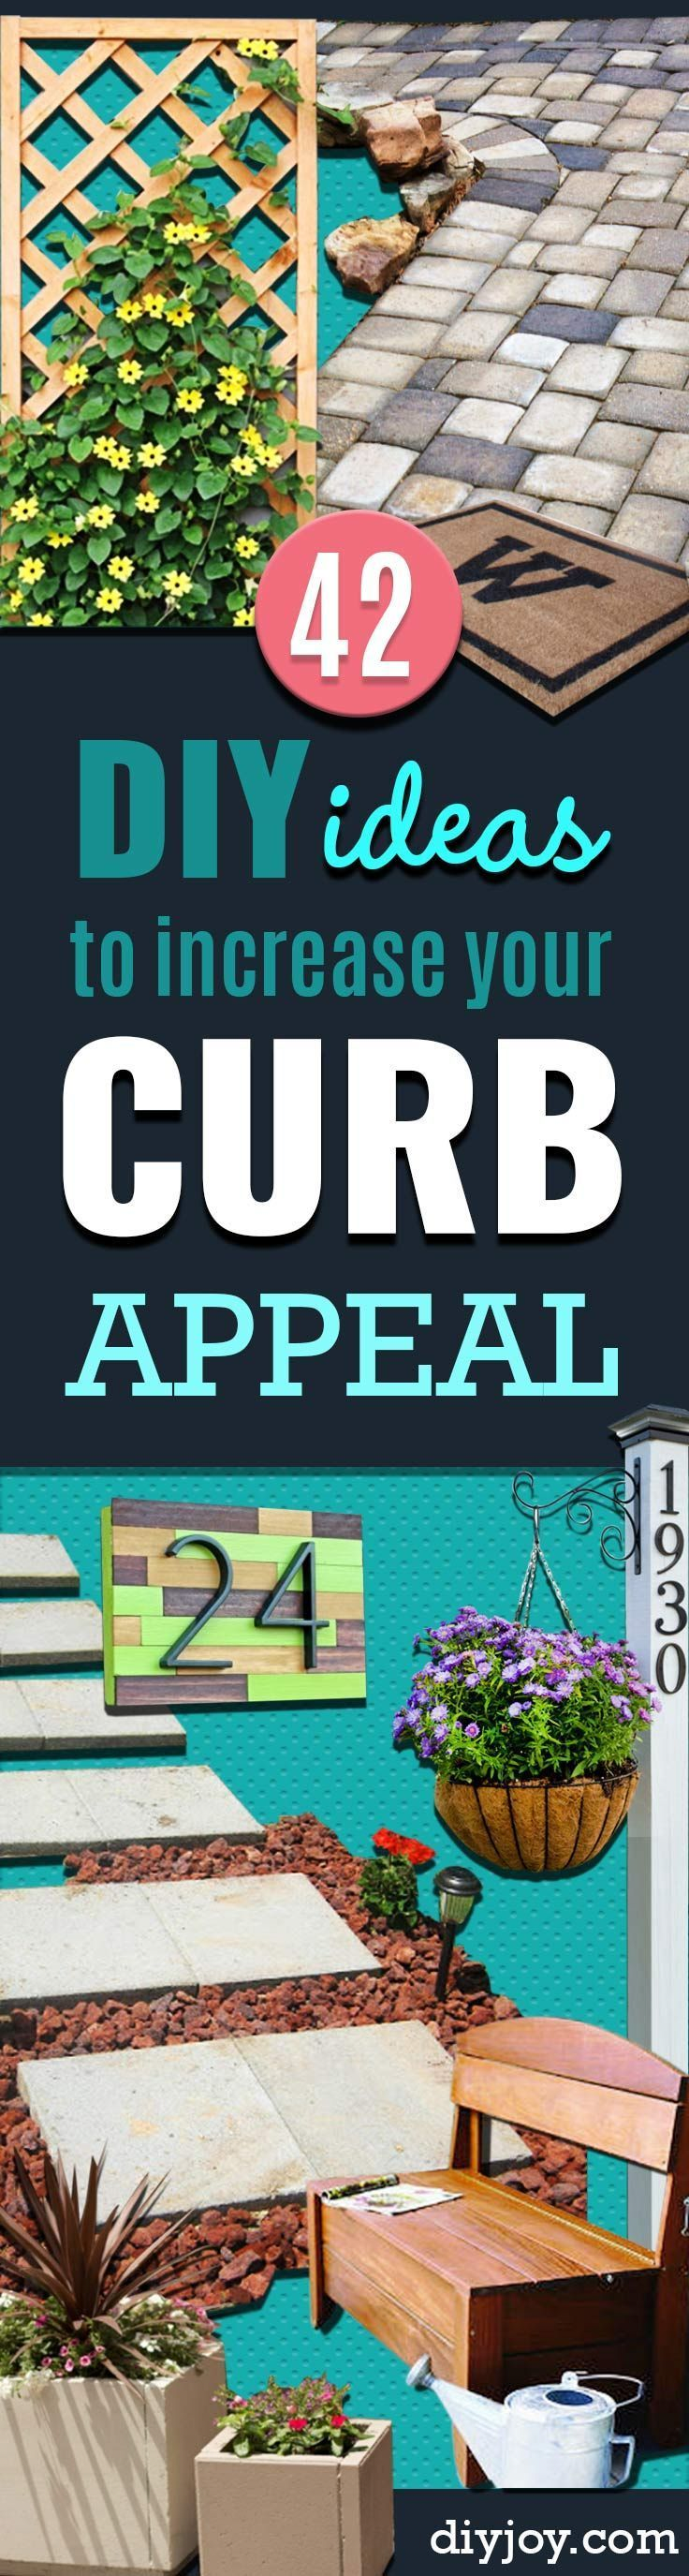 42 Diy Ideas To Increase Curb Appeal Curb Appeal Backyard Makeover Diy On A Budget